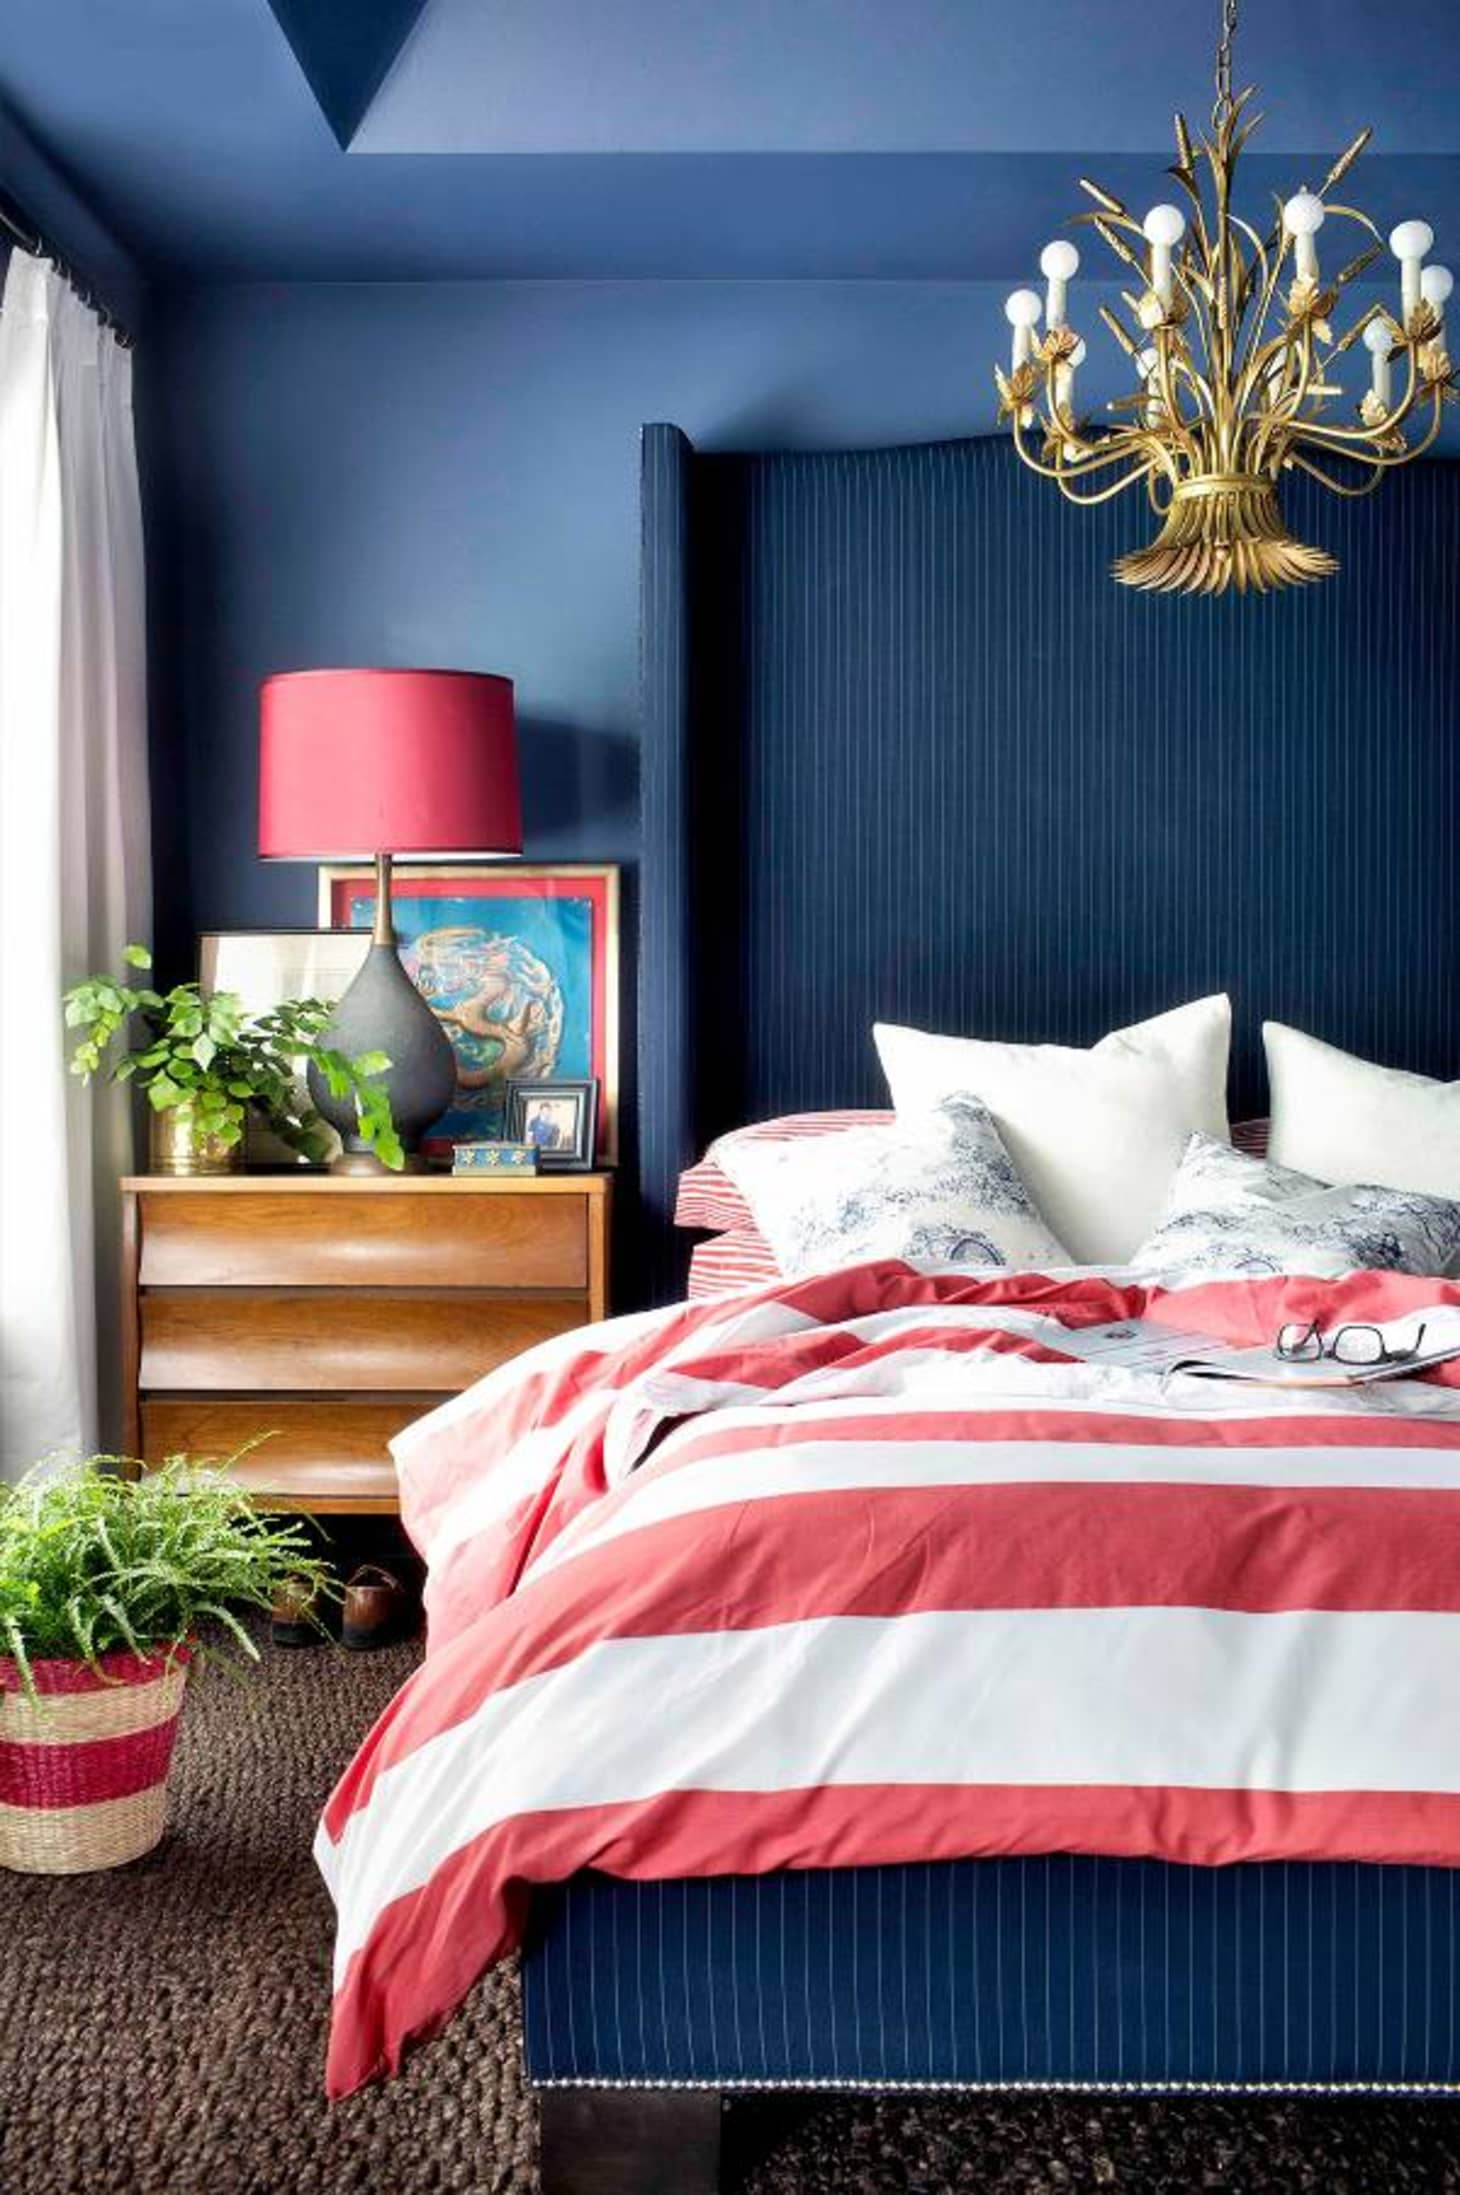 Red and Blue Room Design Ideas - Red and Blue Decor ...